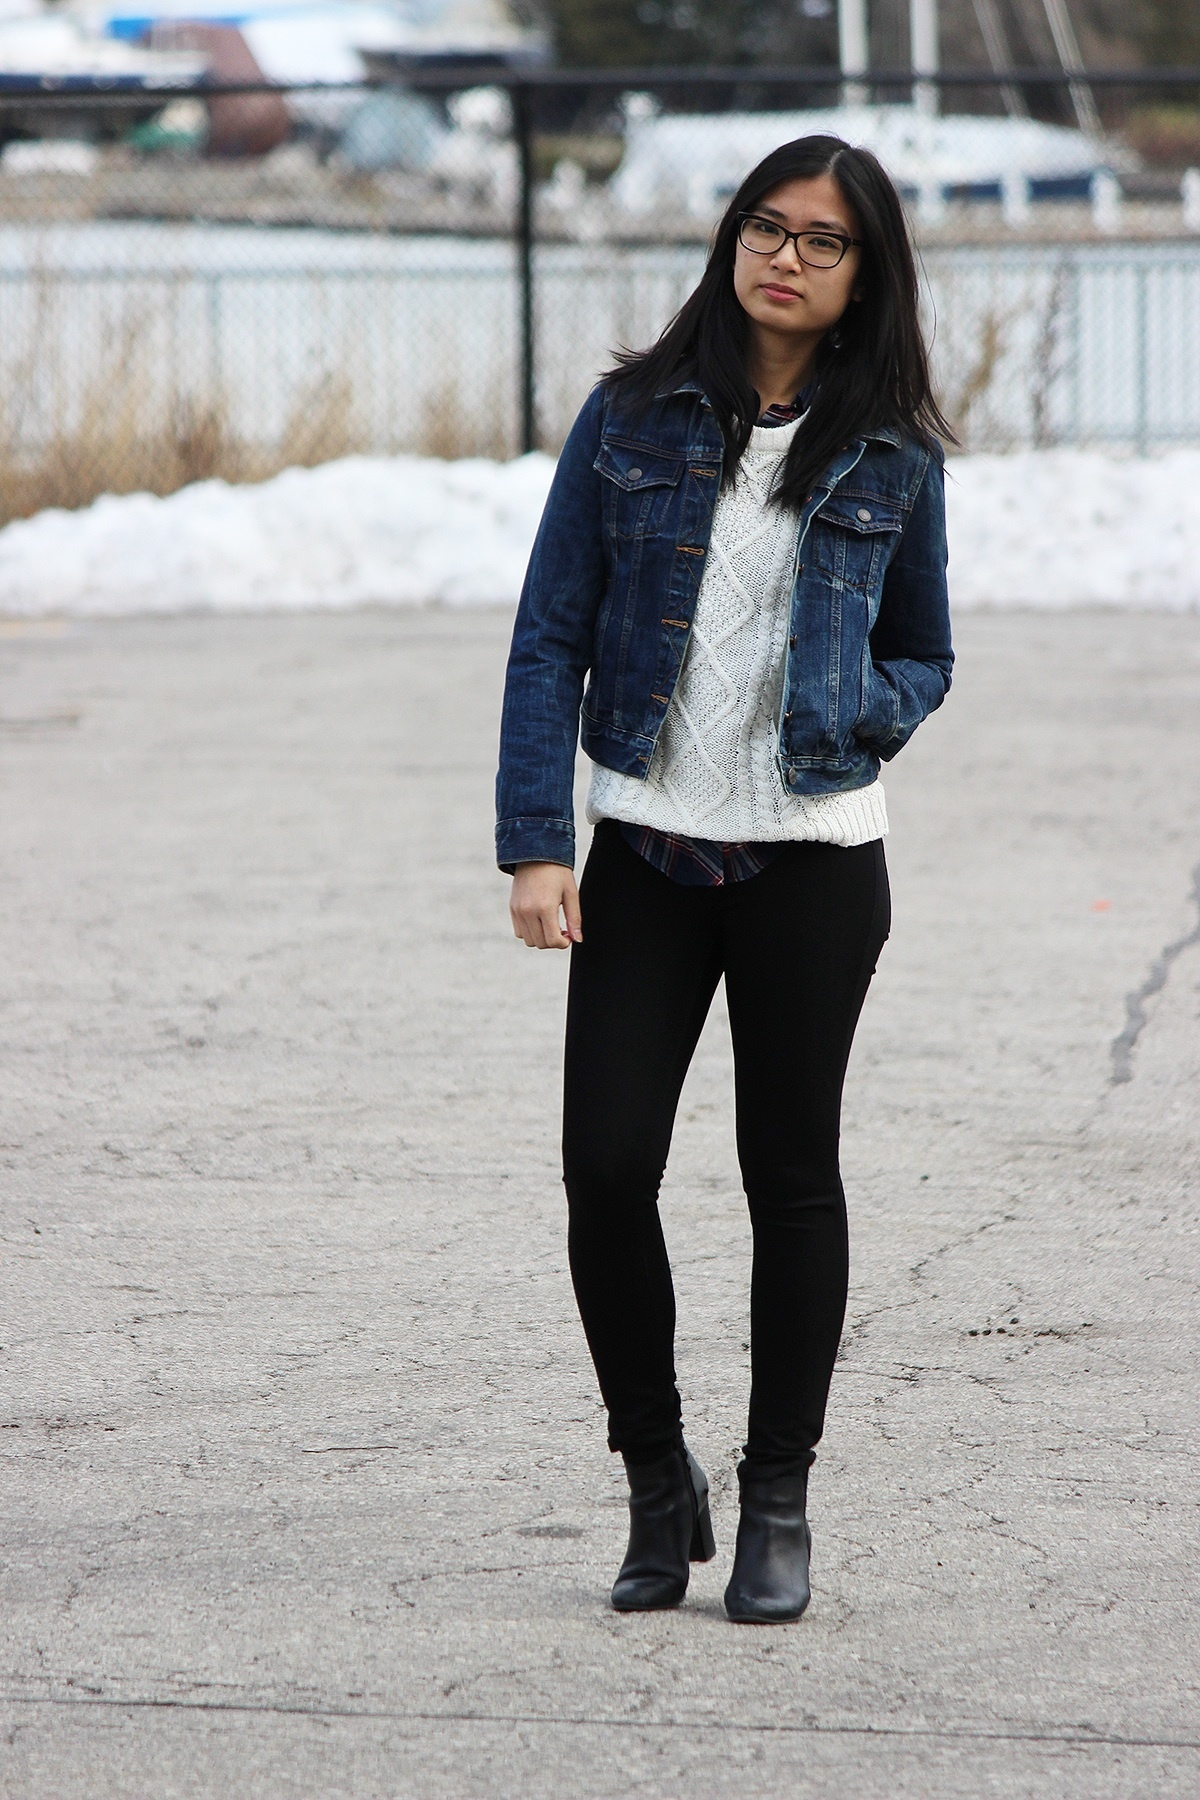 Blue Jean Jacket Outfits Photo Album - Fashion Trends and Models